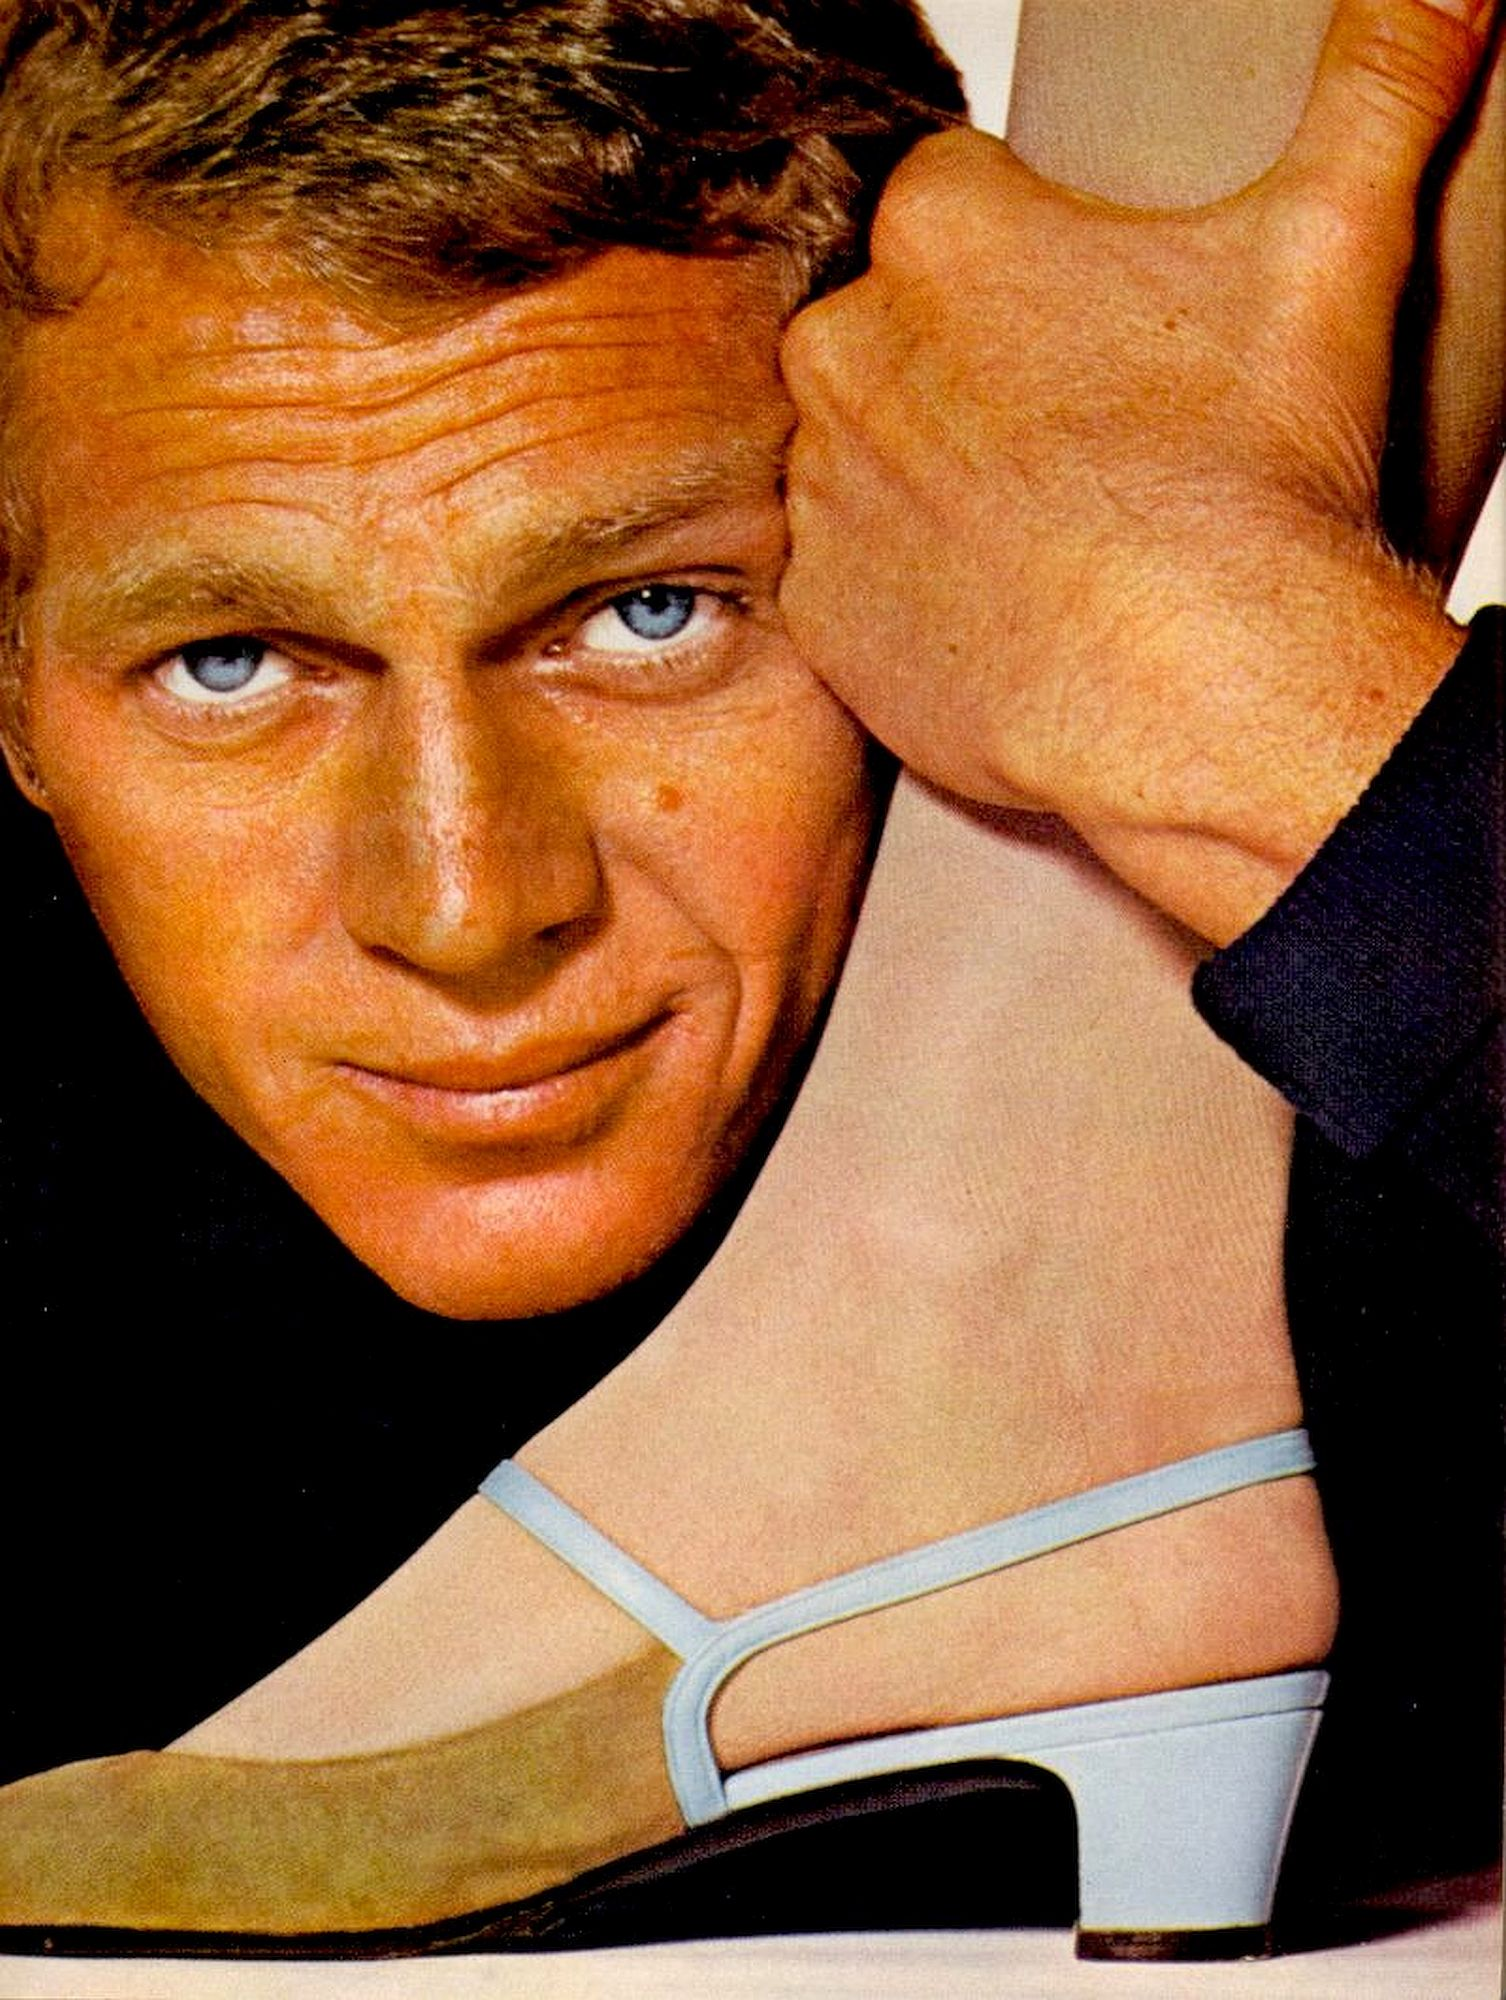 131 • The Soft Touch in Fashion with Steve McQueen